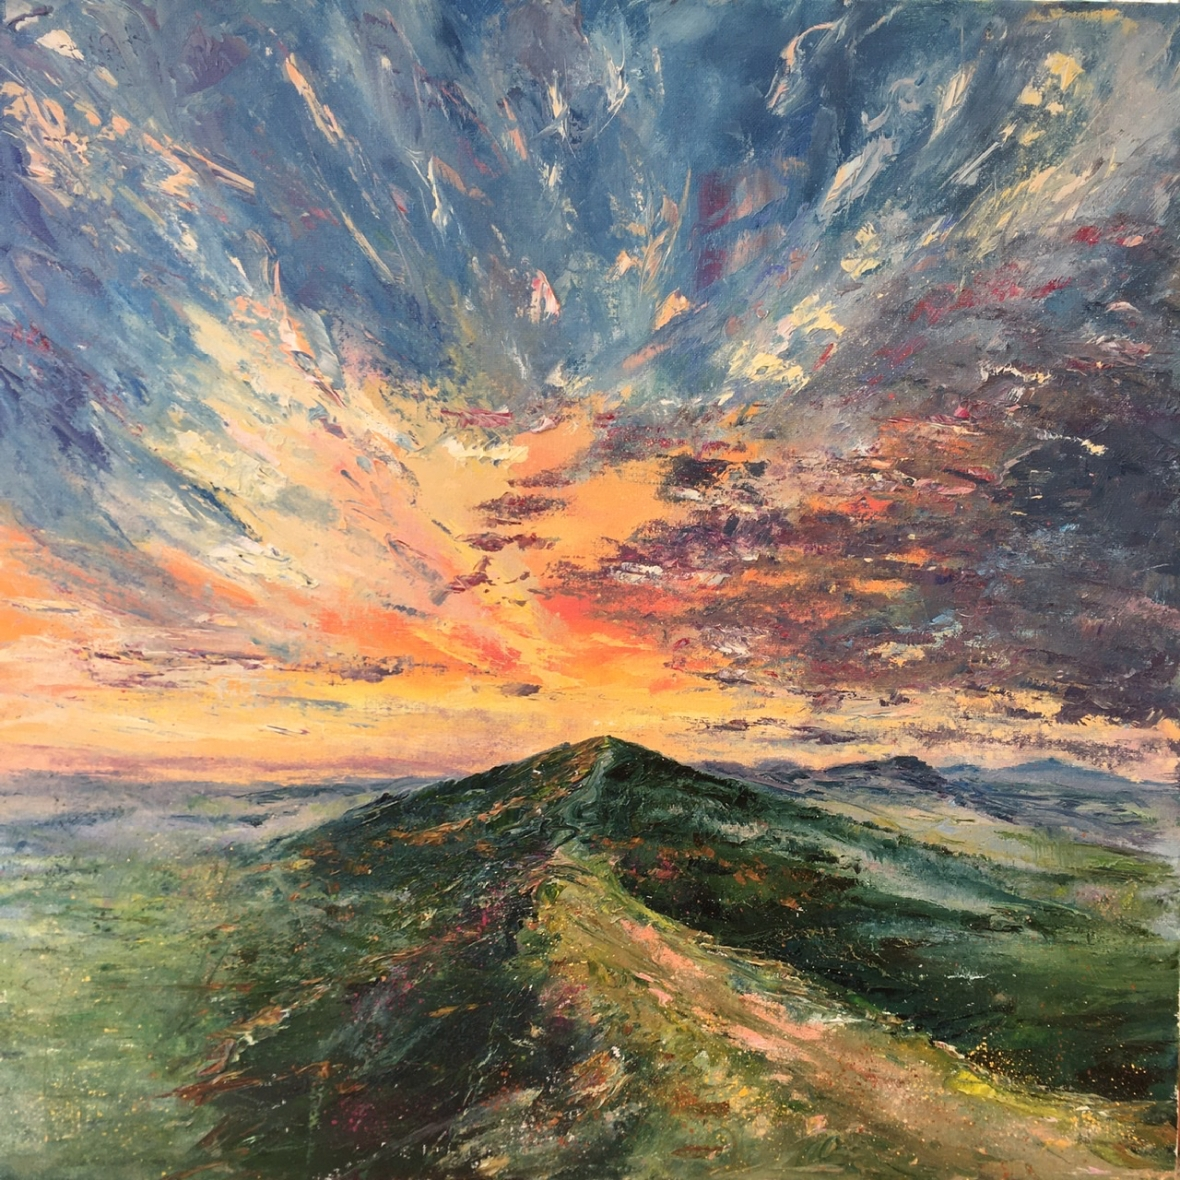 Firecracker sunset, Malverns. Oil painting by Anna Cumming